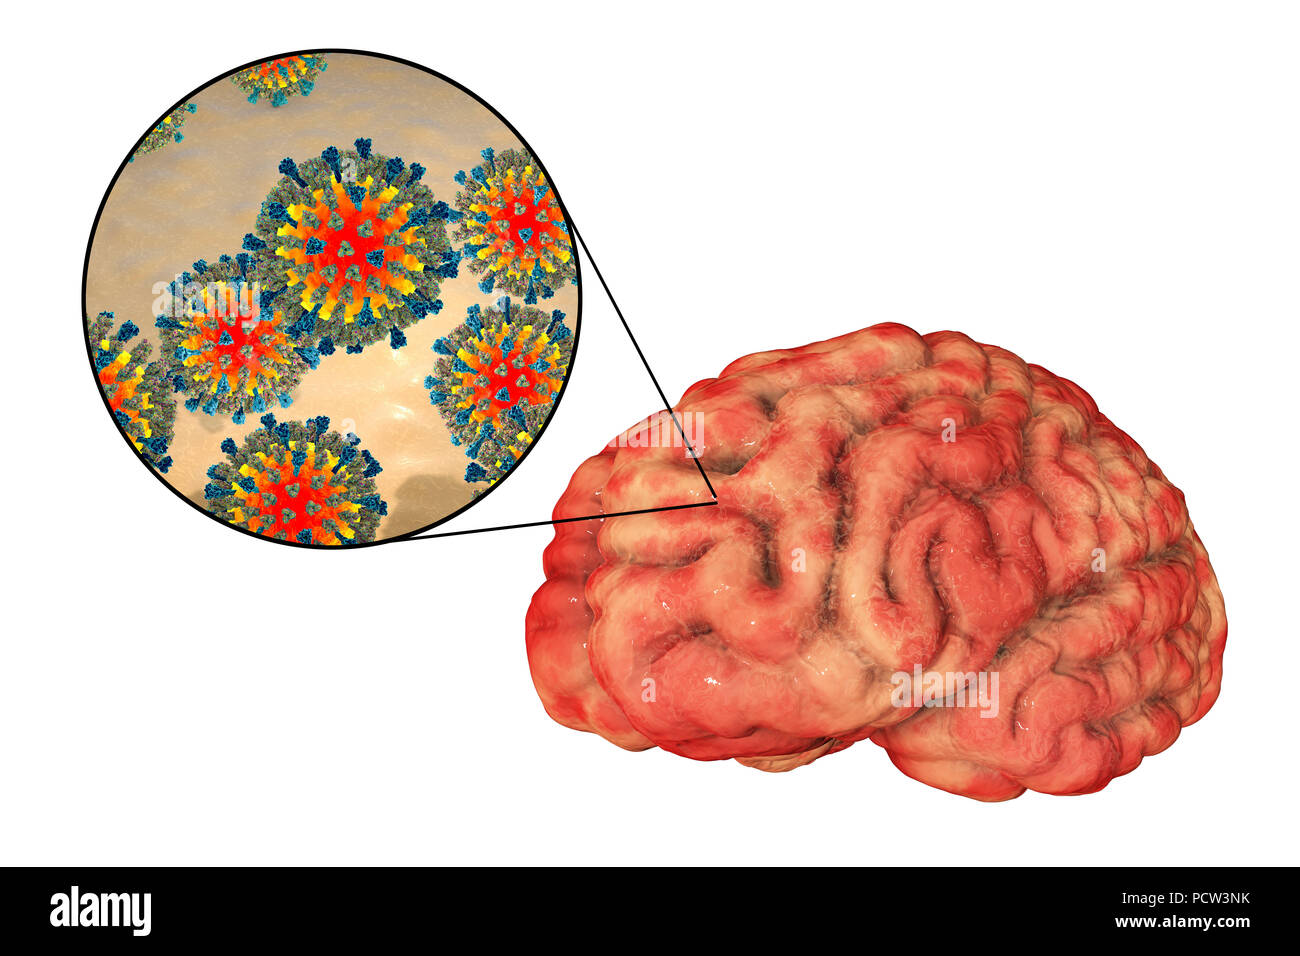 Encephalitis caused by measles viruses, computer illustration. This virus, from the Morbillivirus group of viruses, consists of an RNA (ribonucleic acid) core surrounded by an envelope studded with surface proteins haemagglutinin-neuraminidase and fusion protein, which are used to attach to and penetrate a host cell. Measles is a highly infectious itchy rash with a fever. It mainly affects children and one attack usually gives life-long immunity. Encephalitis is one of complications of measles infection. - Stock Image